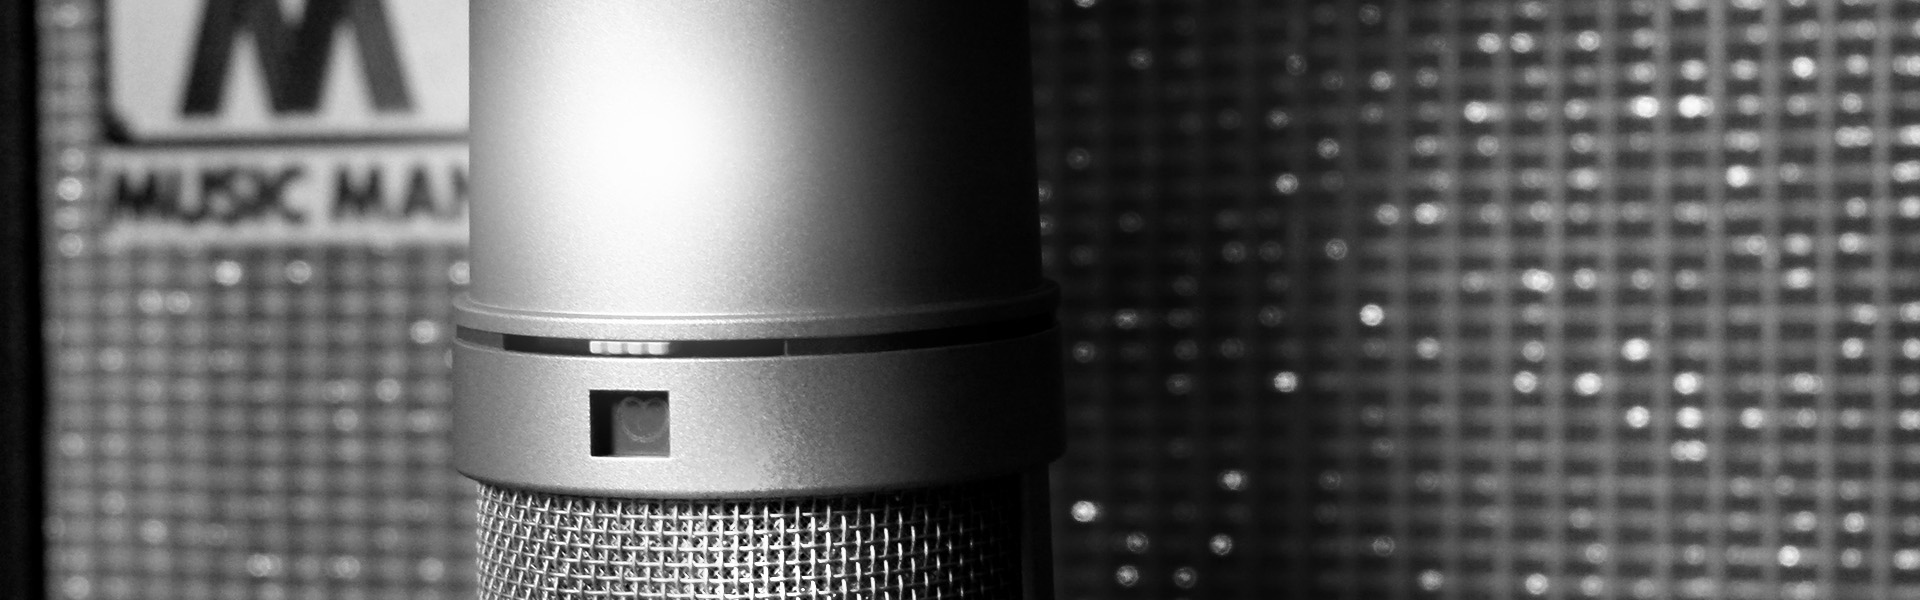 Audio recording using the trusted Neumann U87 Ai